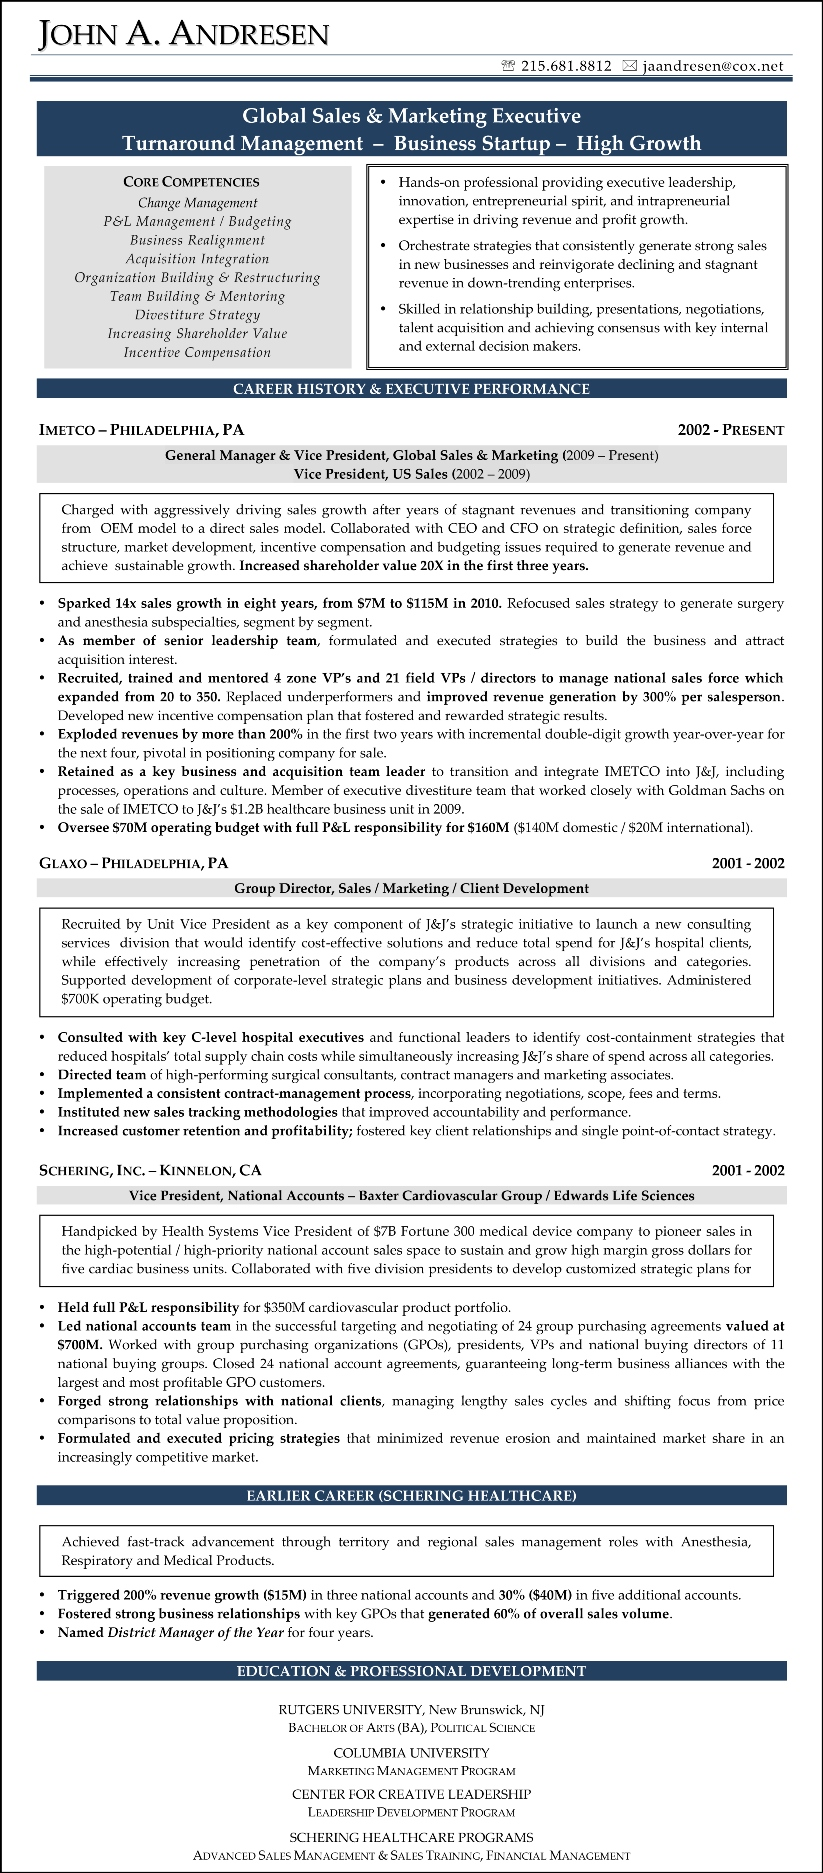 nyc doe resume template professional help sample john andresen and marketing quite Resume Professional Resume Help Nyc